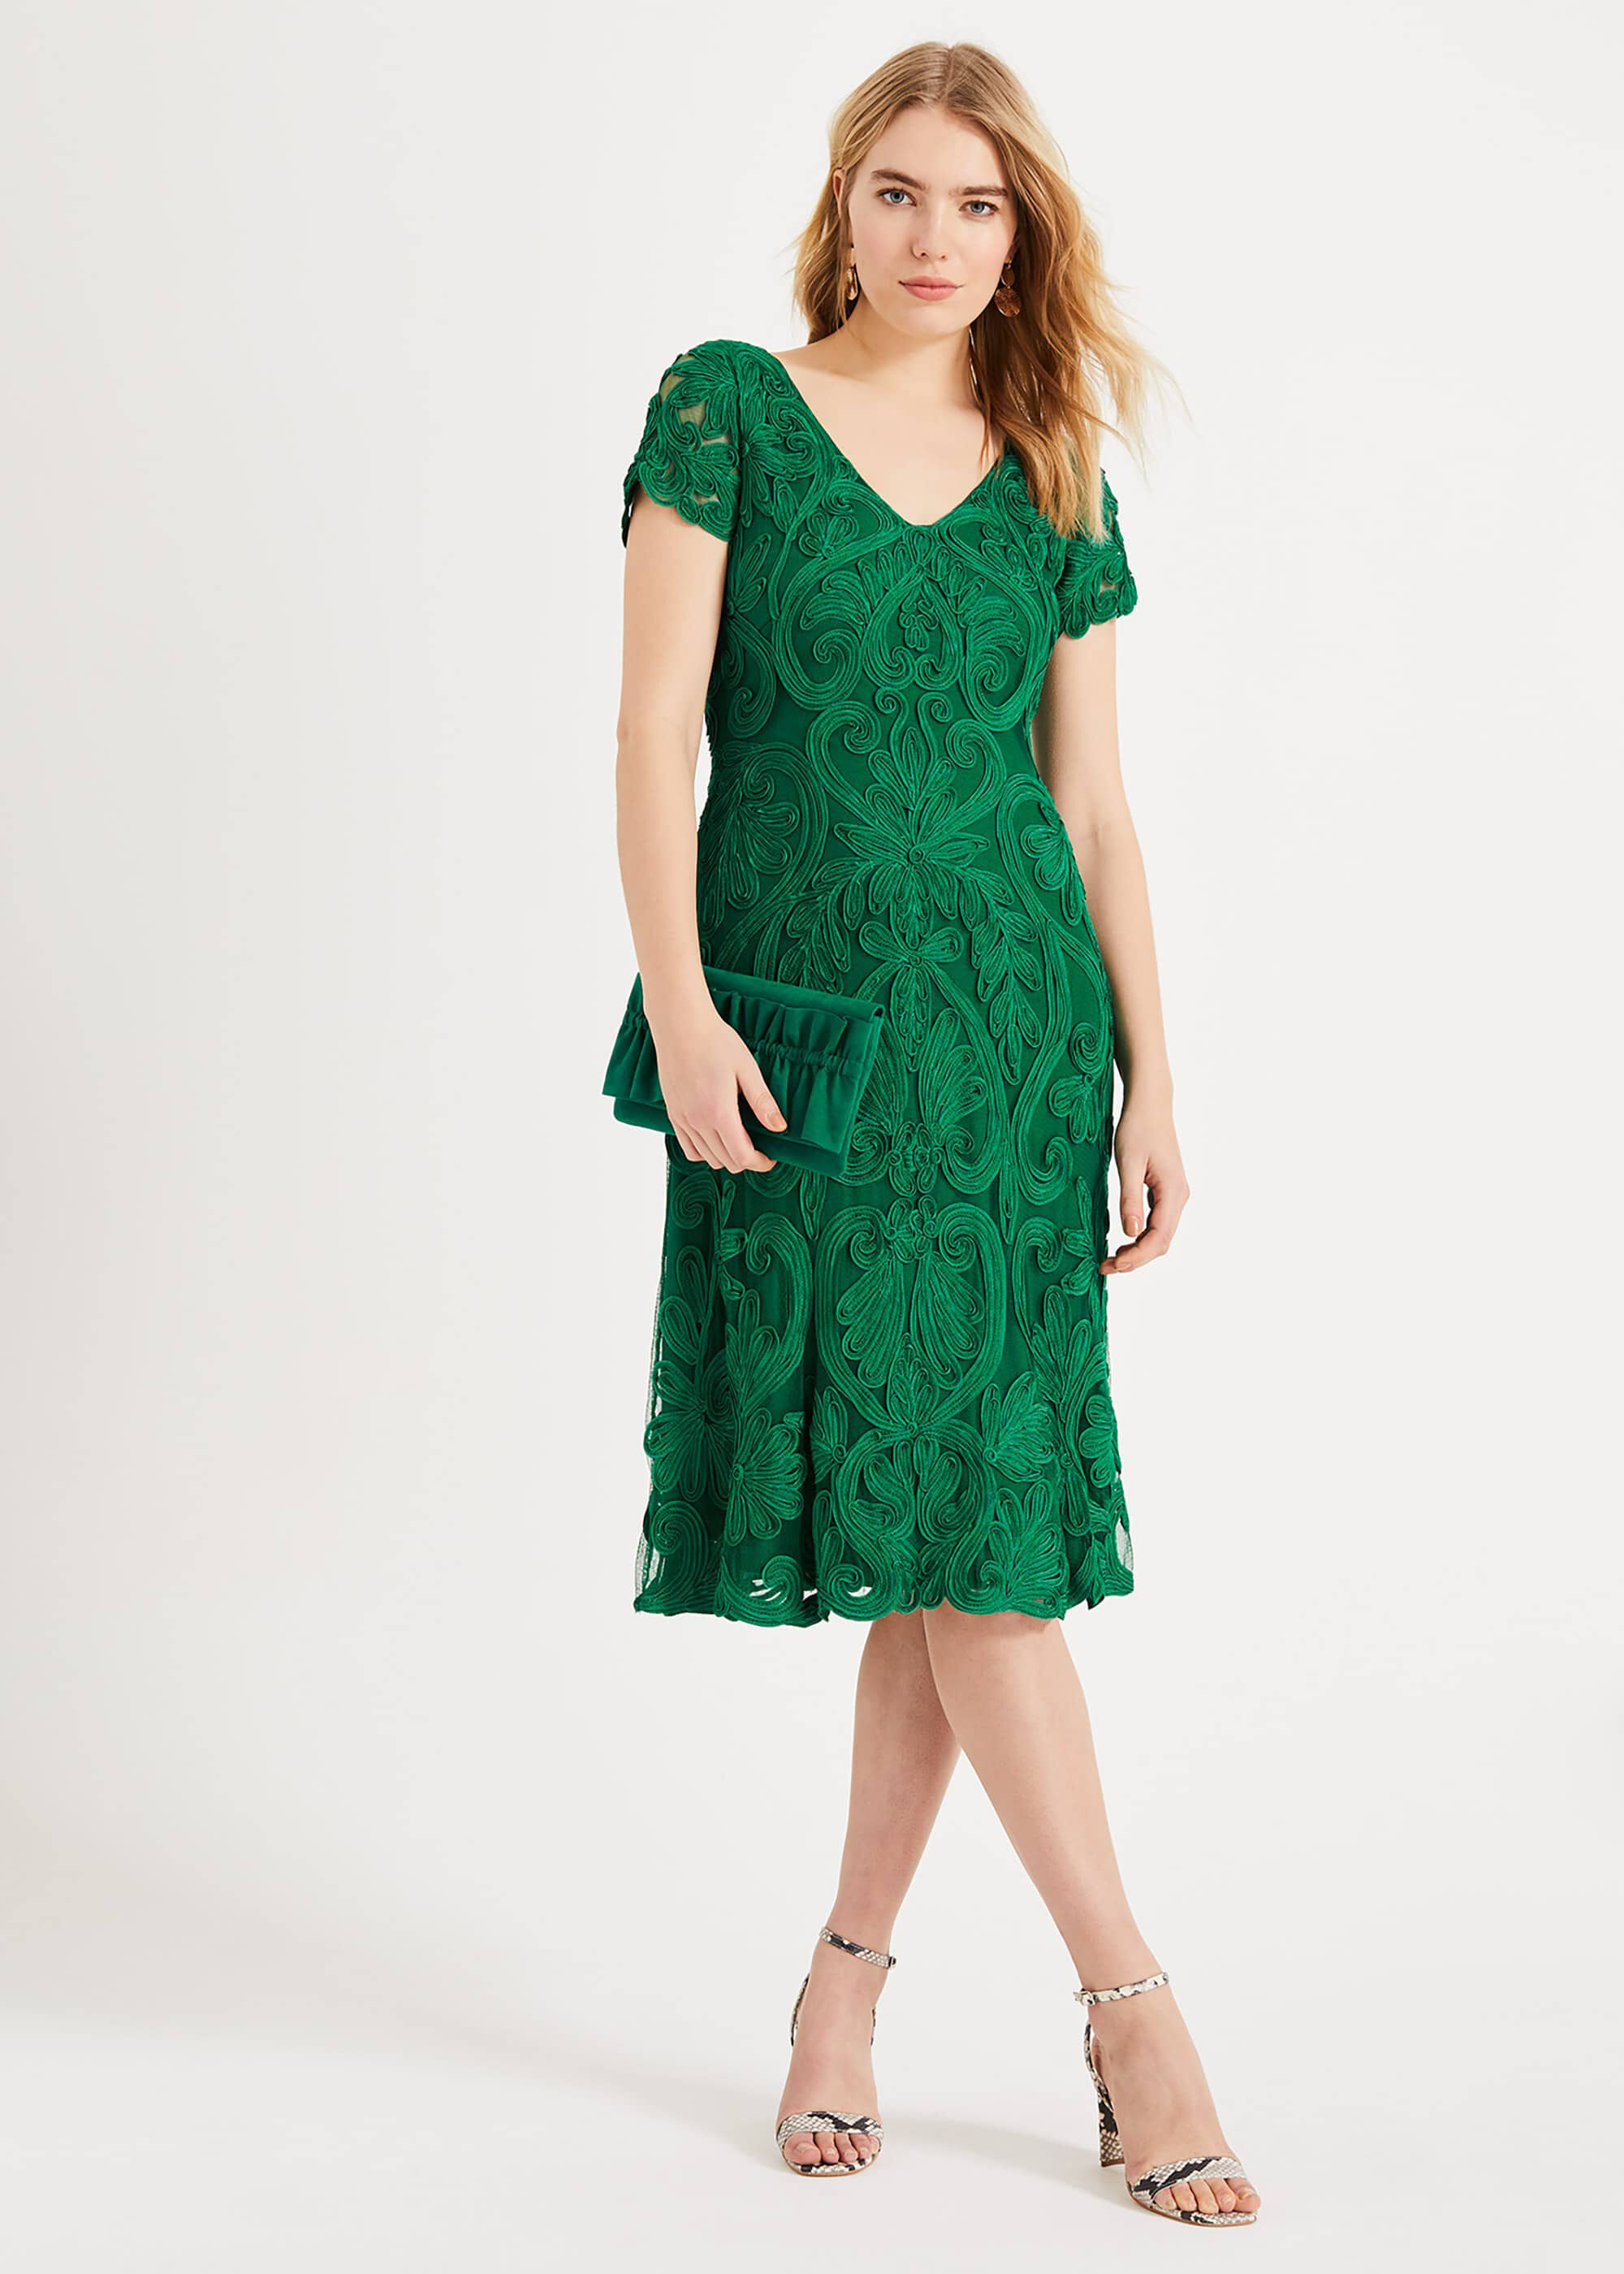 Phase Eight Kady Tapework Lace Dress, Green, Fit & Flare